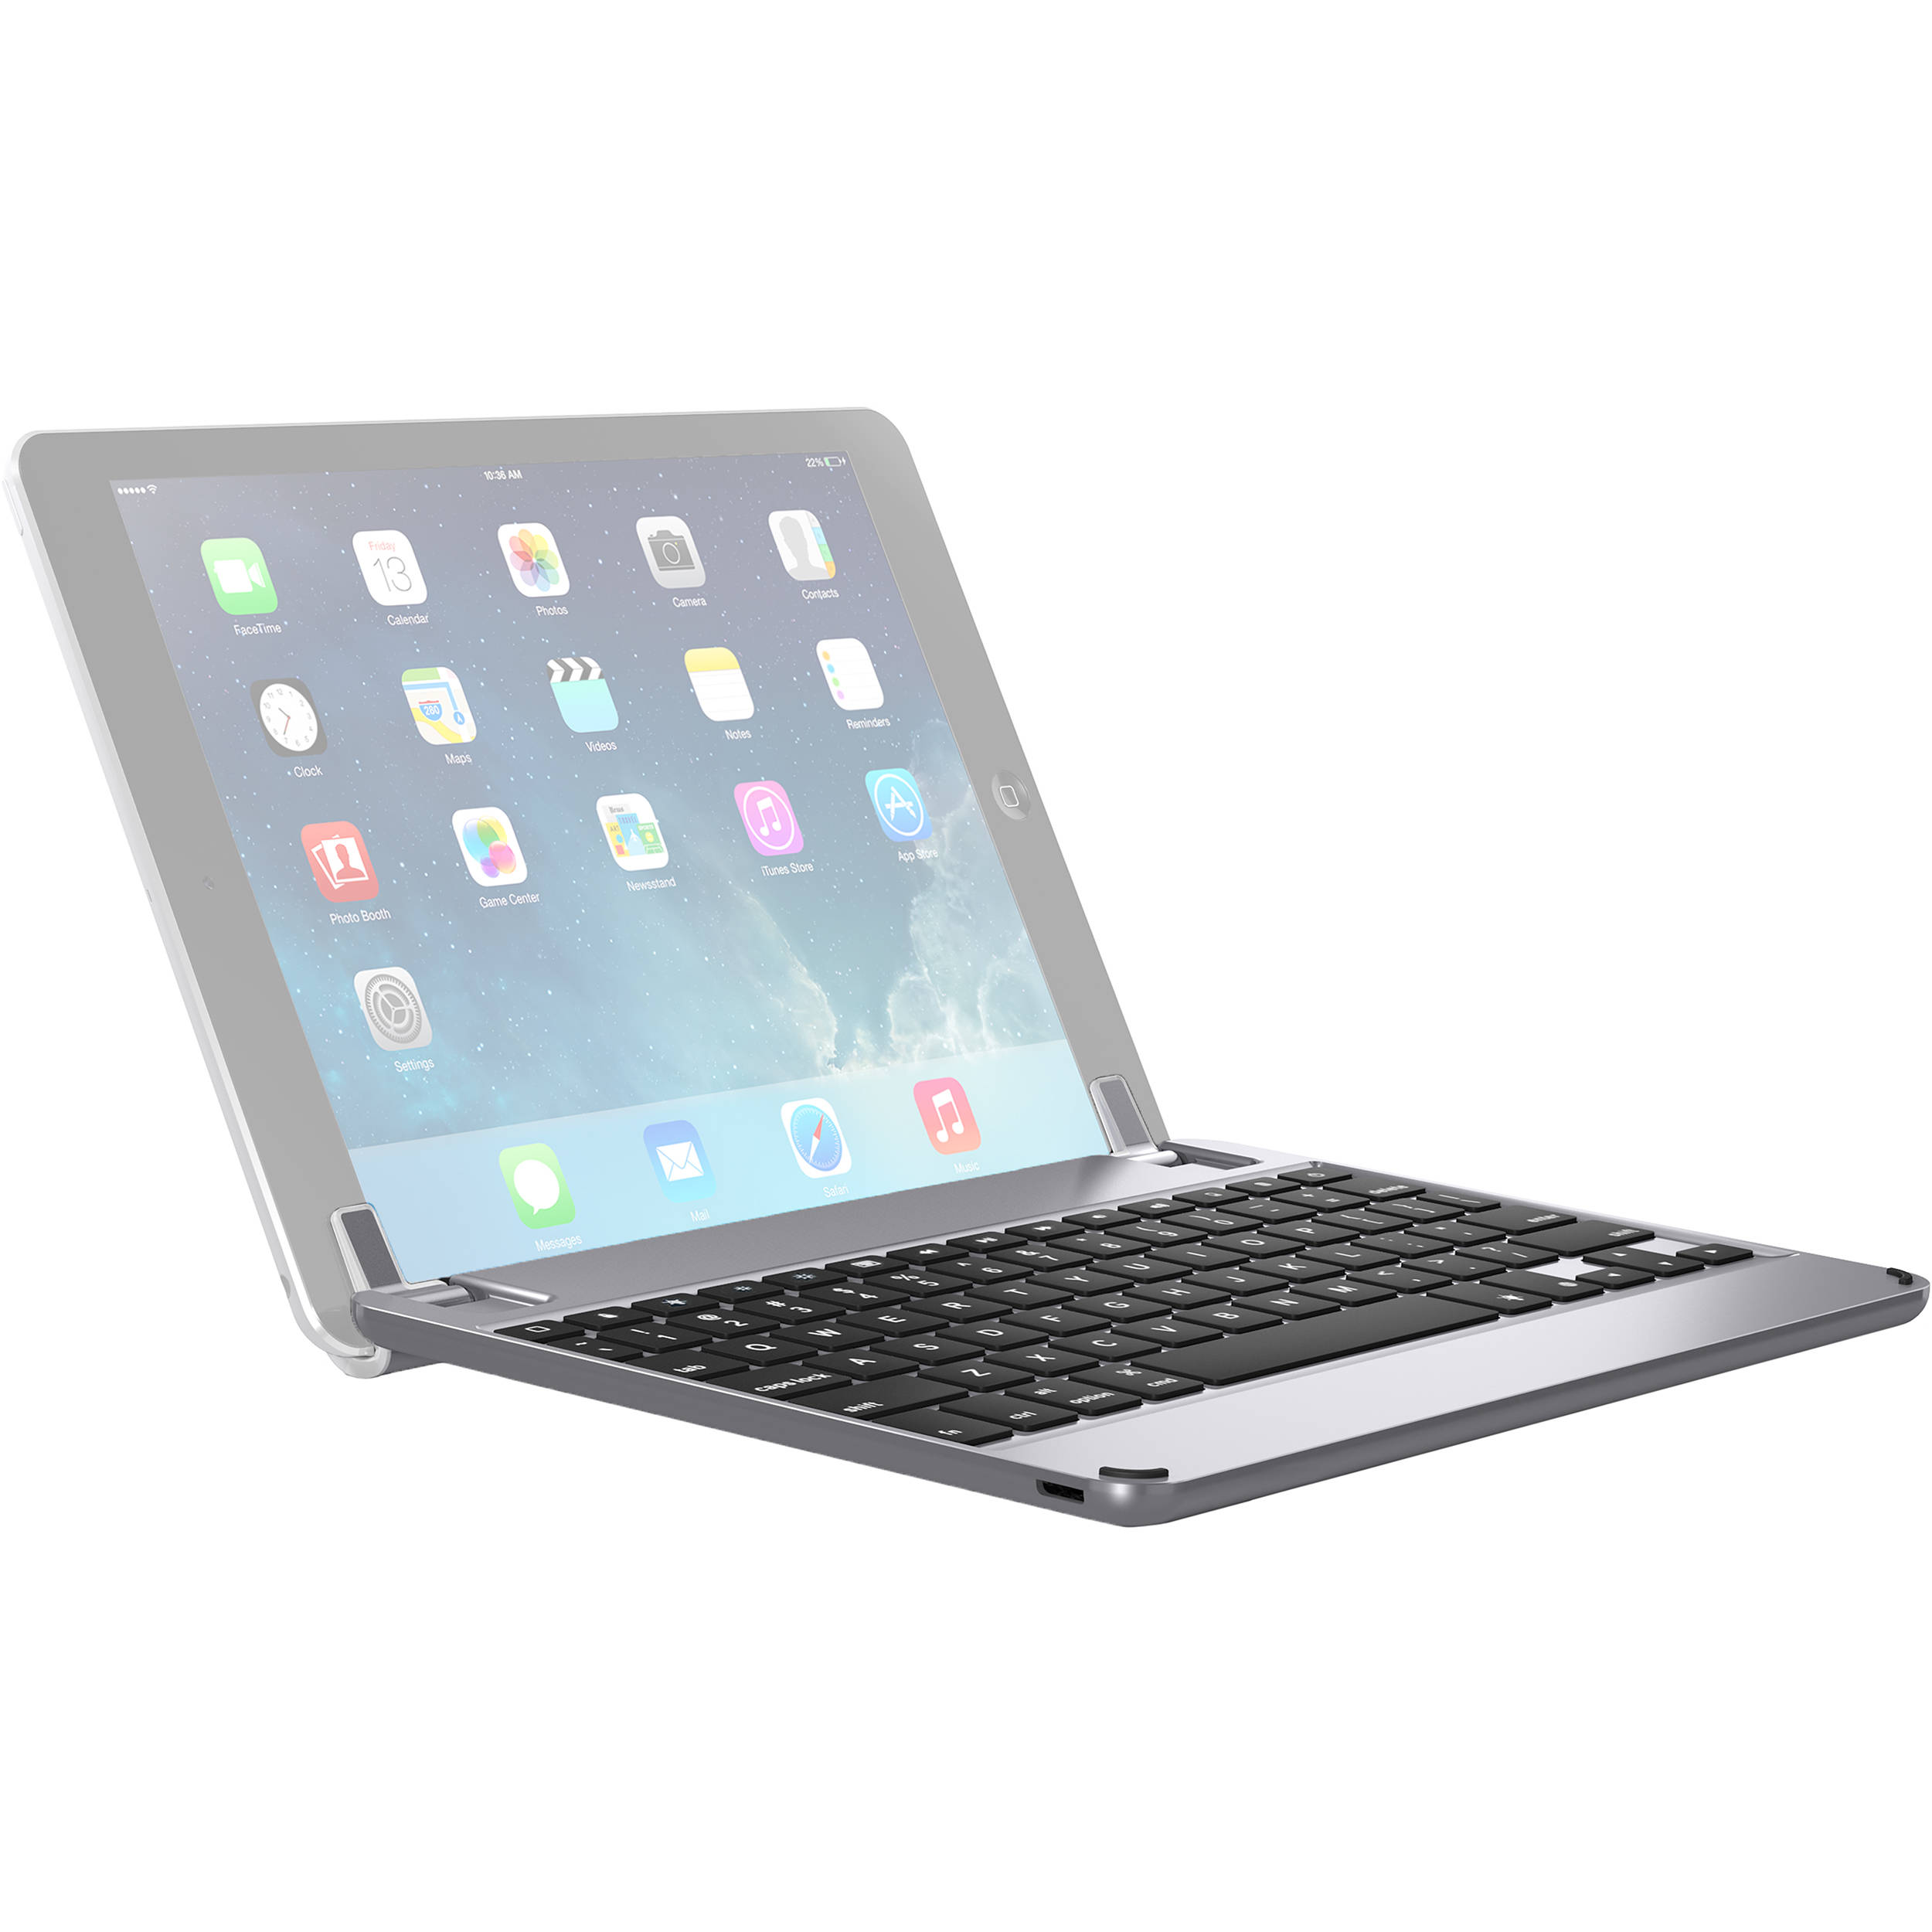 3bb357b155e Brydge 9.7 Bluetooth Keyboard for iPad Air 1/2, Pro BRY1012 B&H